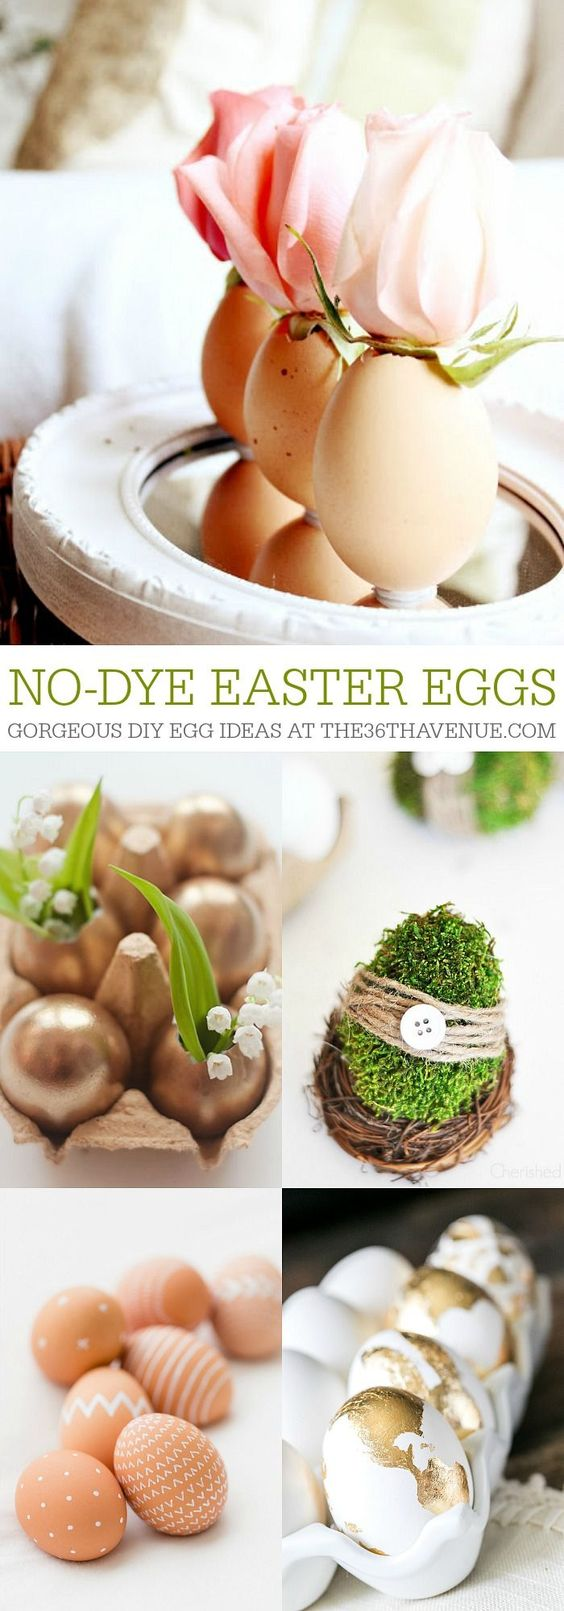 Easter - No Dye Easter Egg Tutorials at the36thavenue.com ...Adorable ideas! Pin it now and make them later!: